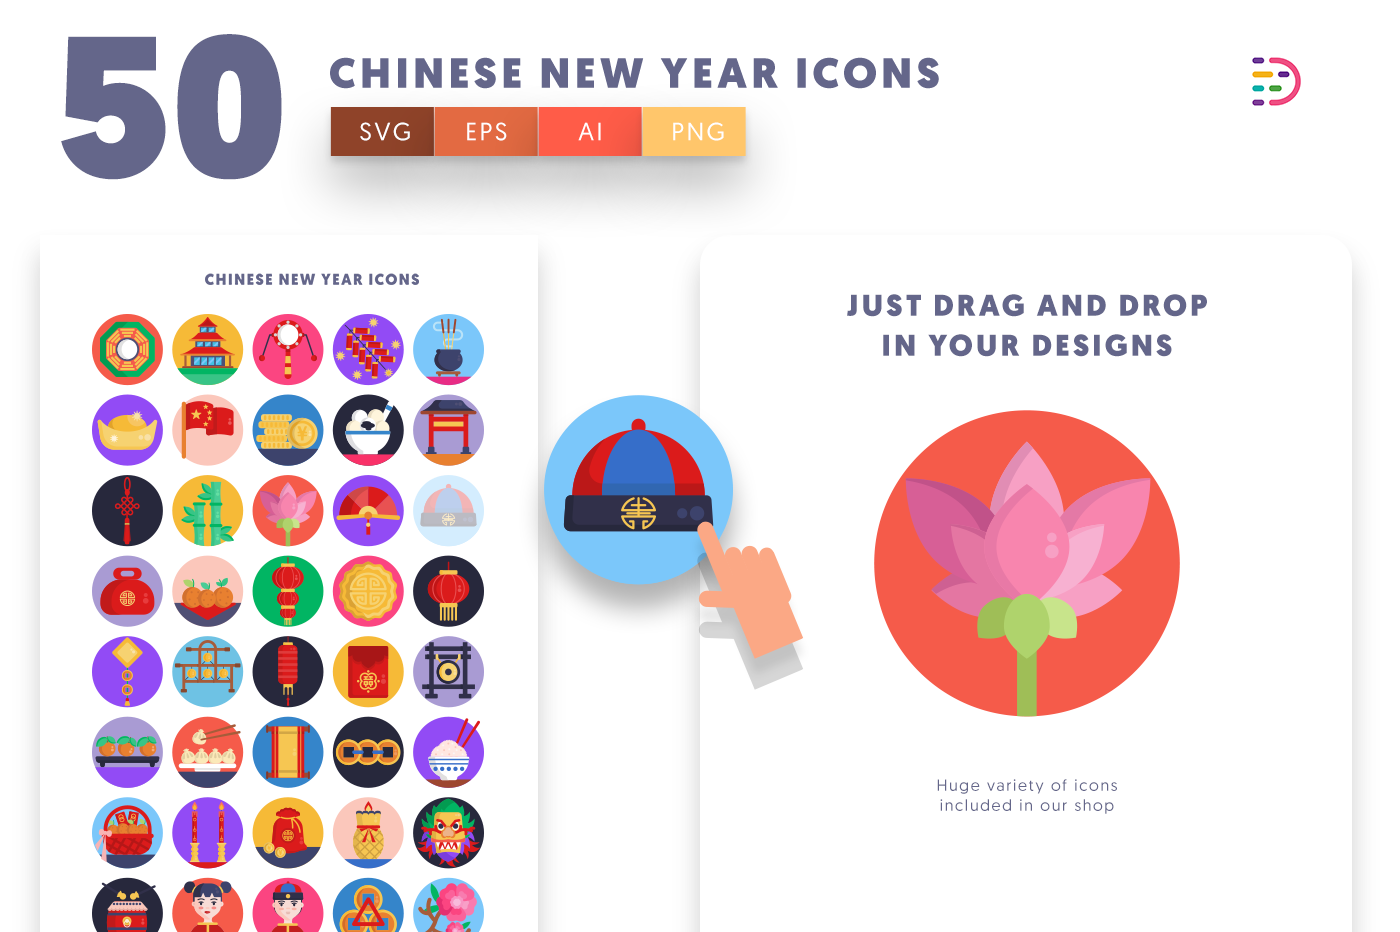 Drag and drop vector 50 Chinese New Year Icons